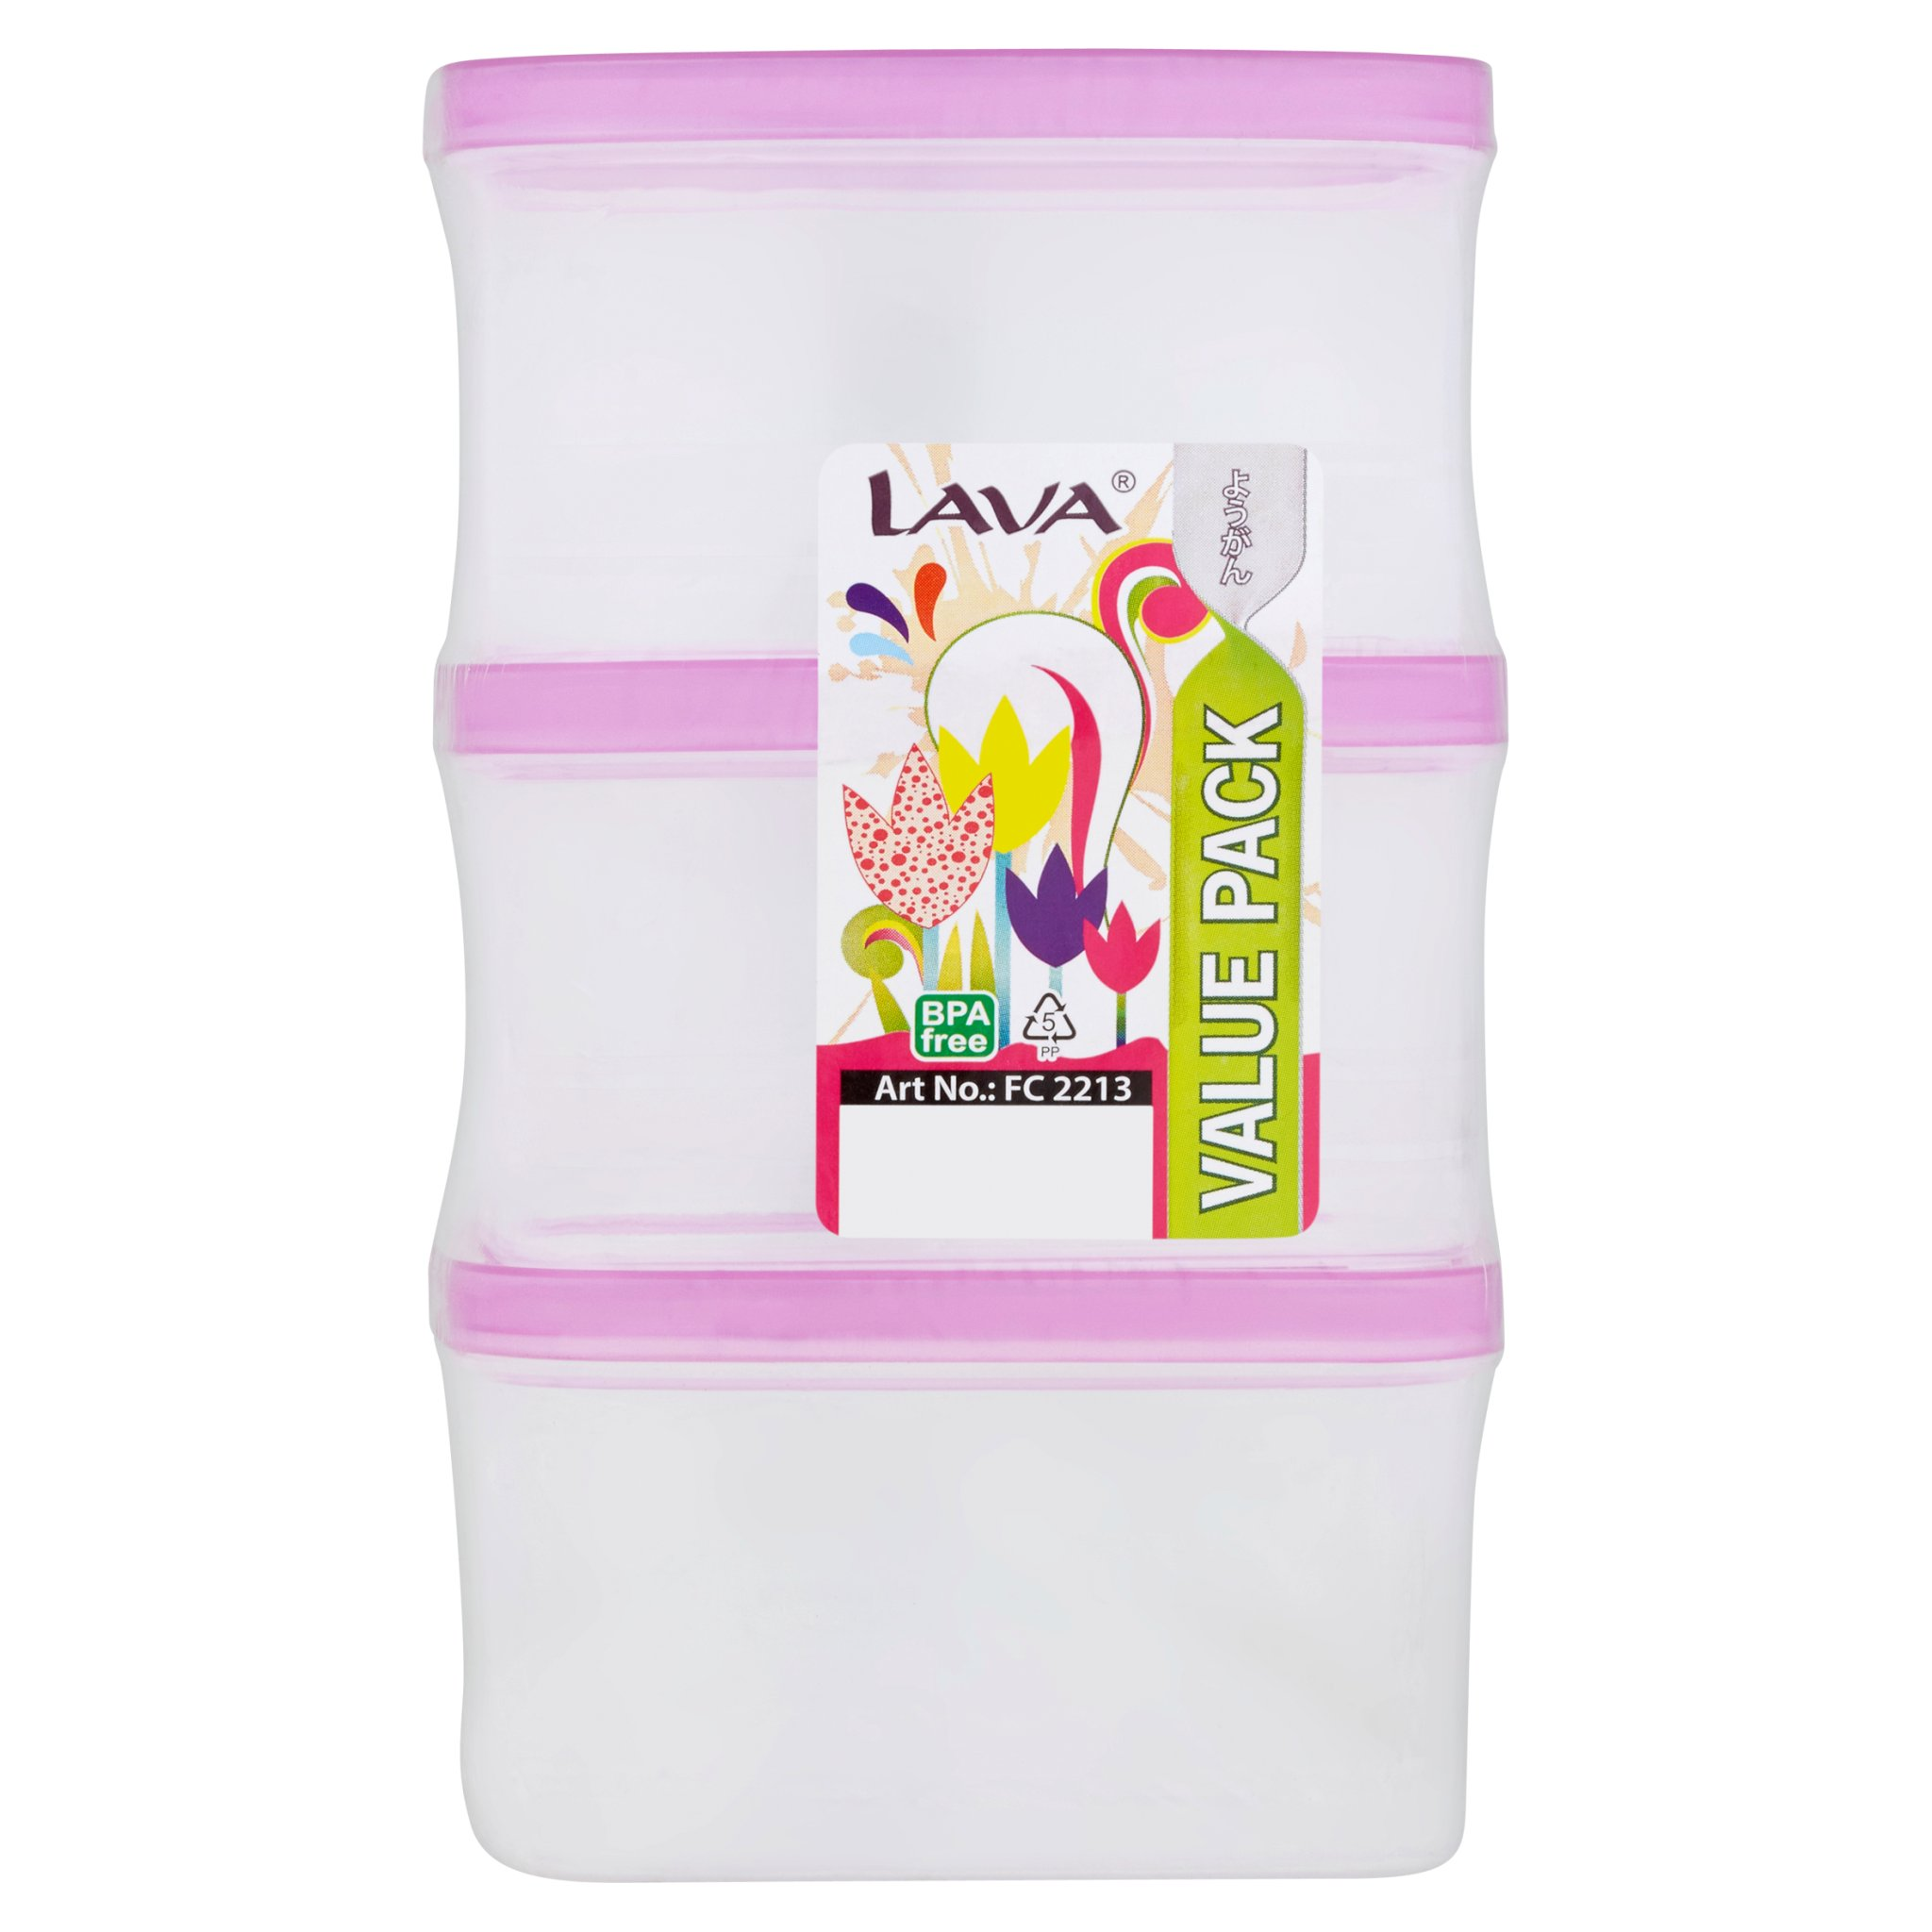 Lava Food Container FC2213